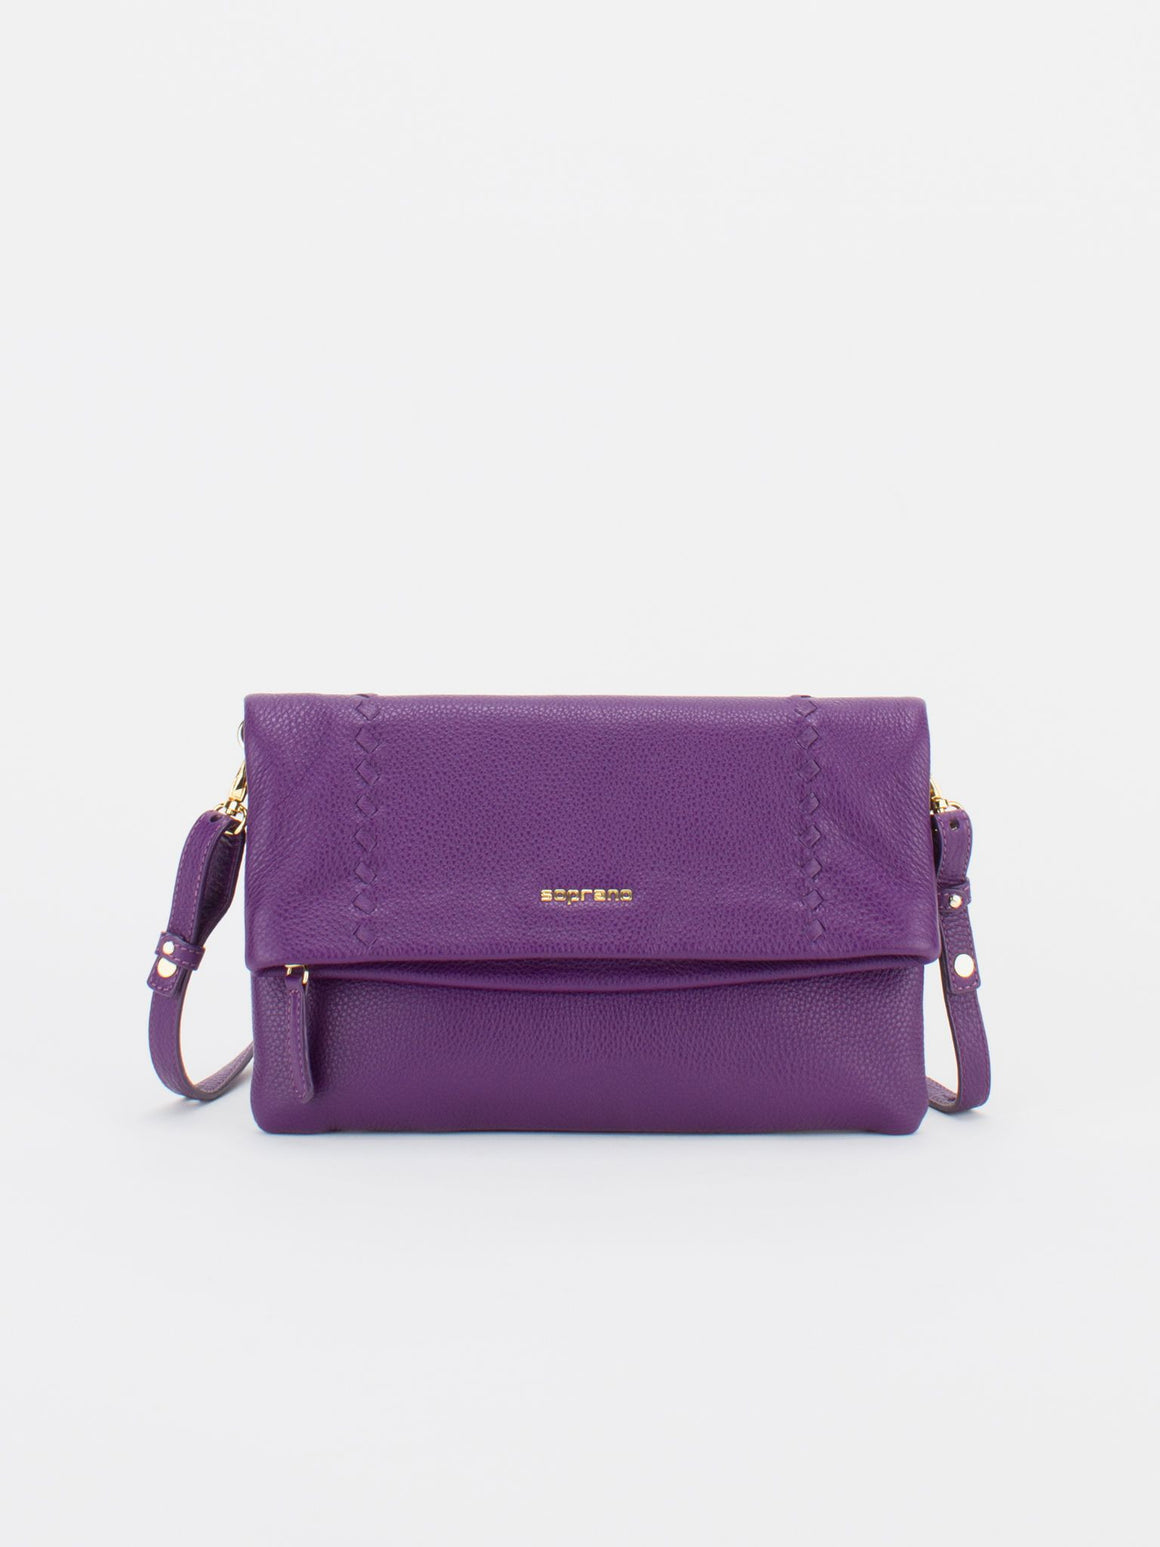 CALI Leather Fold-Over Zip Front Crossbody Bag - Aubergine